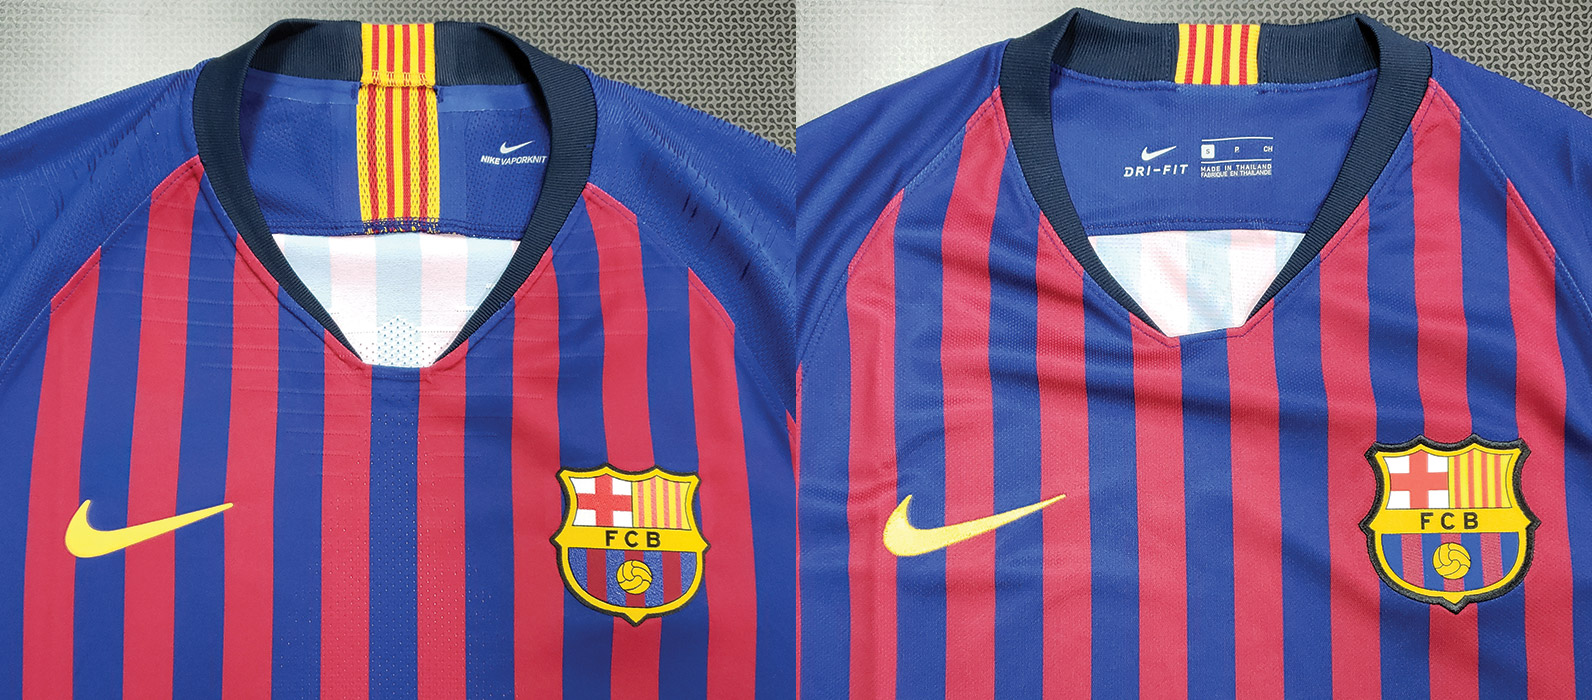 Authentic vs. Replica Soccer Jerseys - AuthenticSoccer.com